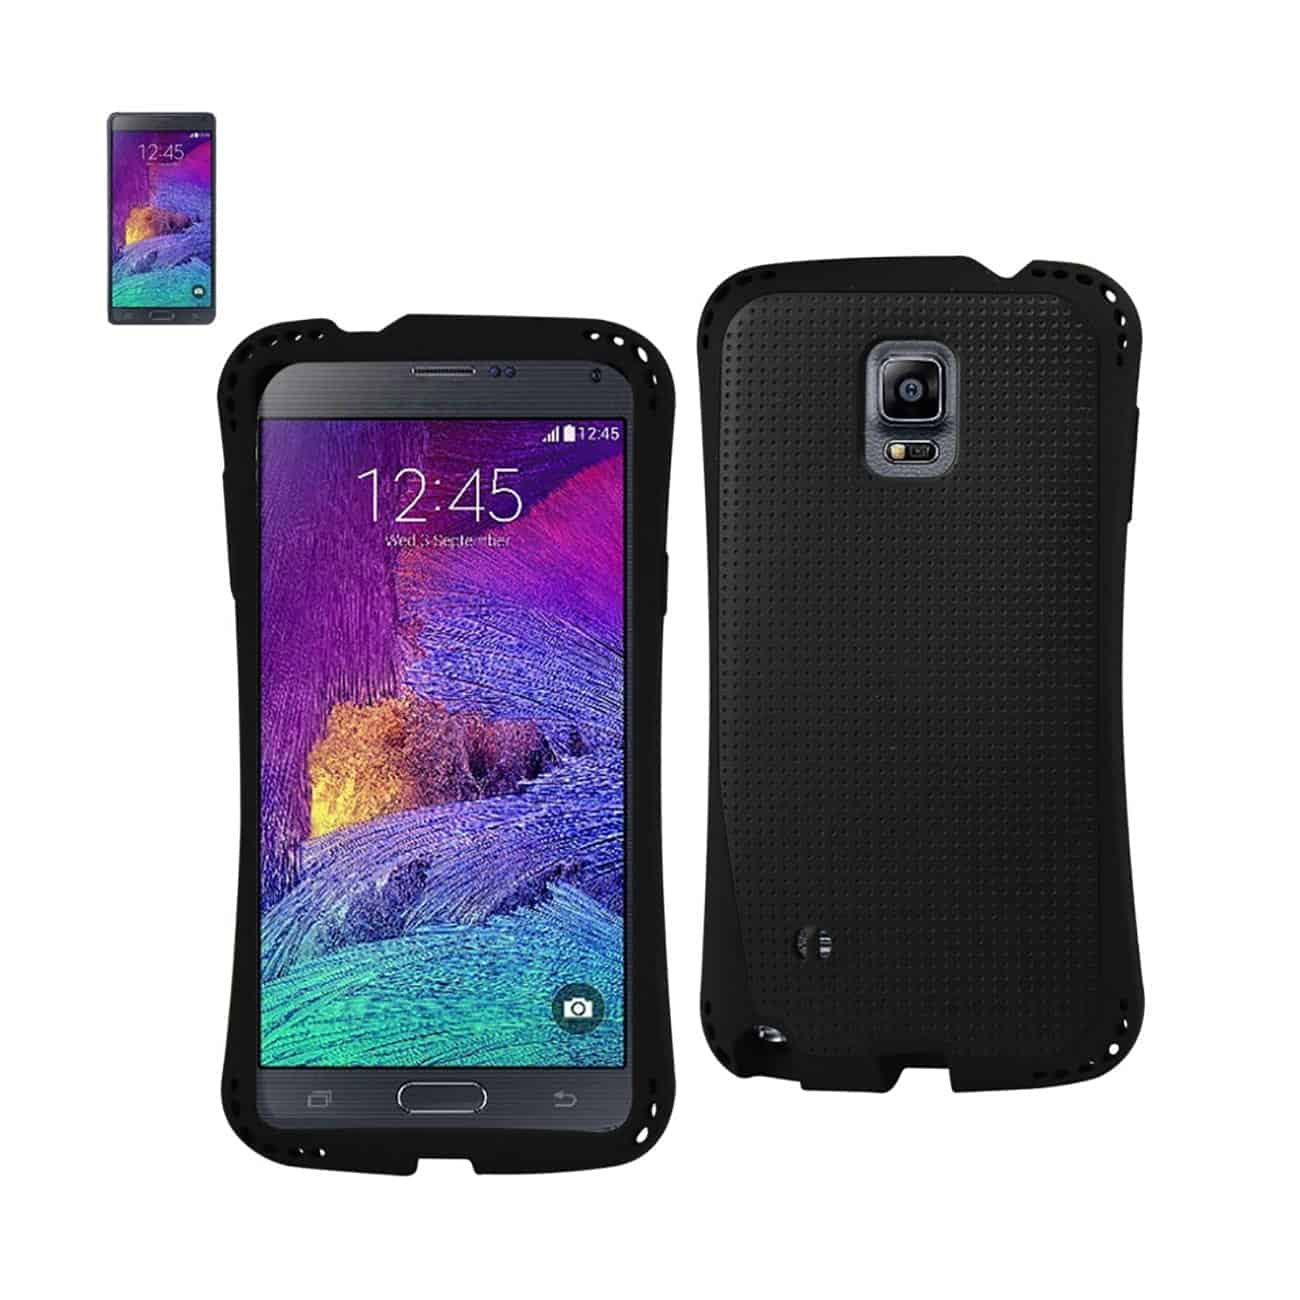 SAMSUNG GALAXY NOTE 4 DROPPROOF AIR CUSHION CASE WITH CHAIN HOLE IN BLACK